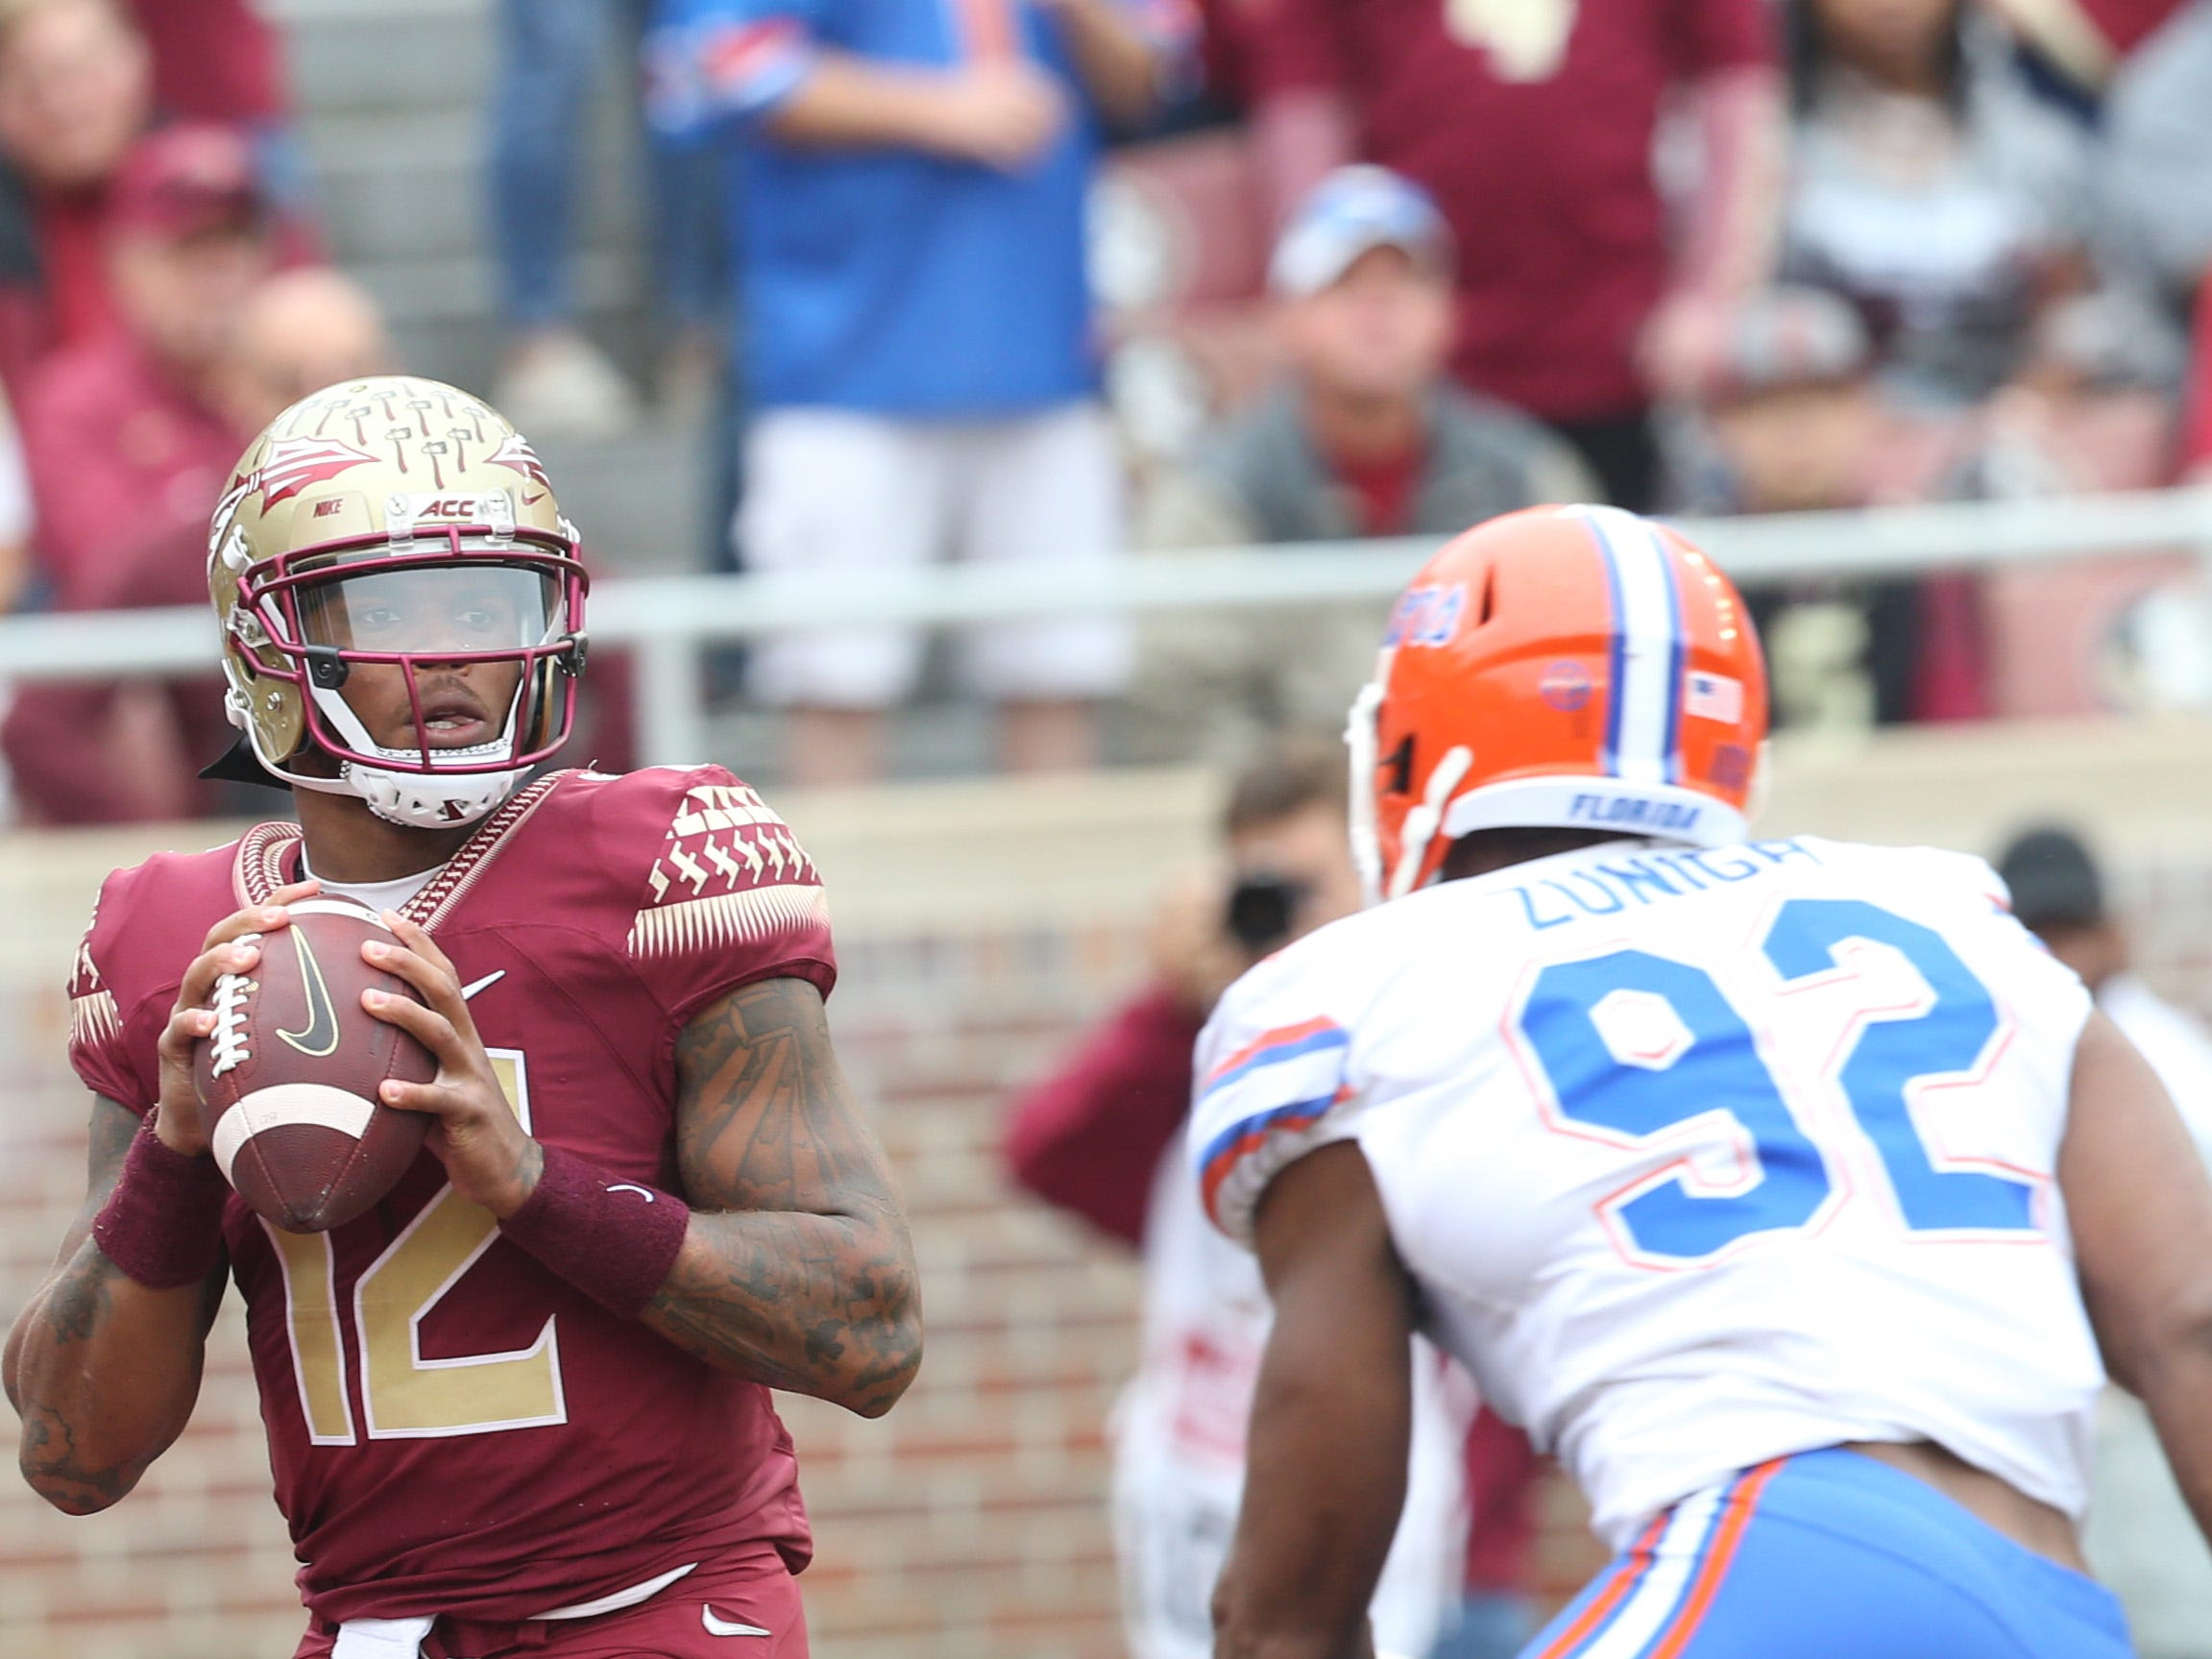 Florida State Seminoles quarterback Deondre Francois (12) looks to pass as the Florida State Seminoles take on their rival the Florida Gators in college football at Doak S. Campbell Stadium, Saturday, Nov. 24, 2018.